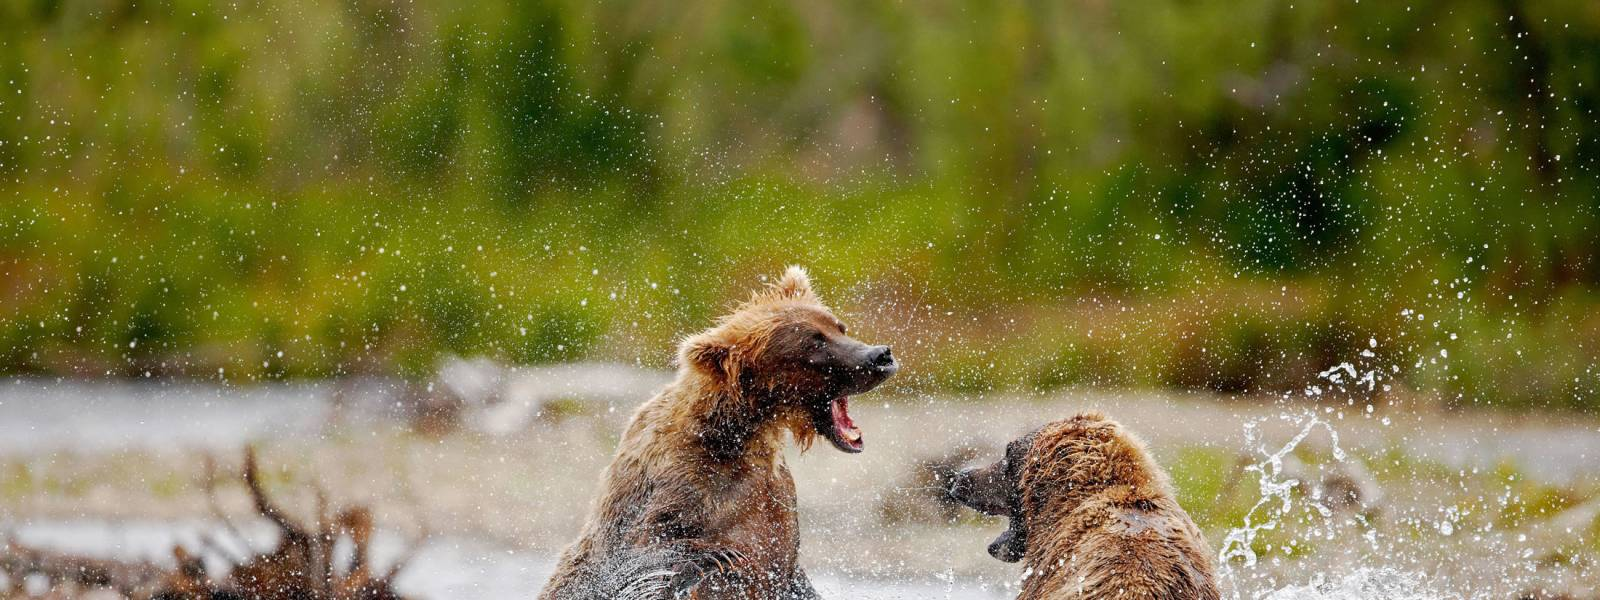 Bears in Katmai National Park